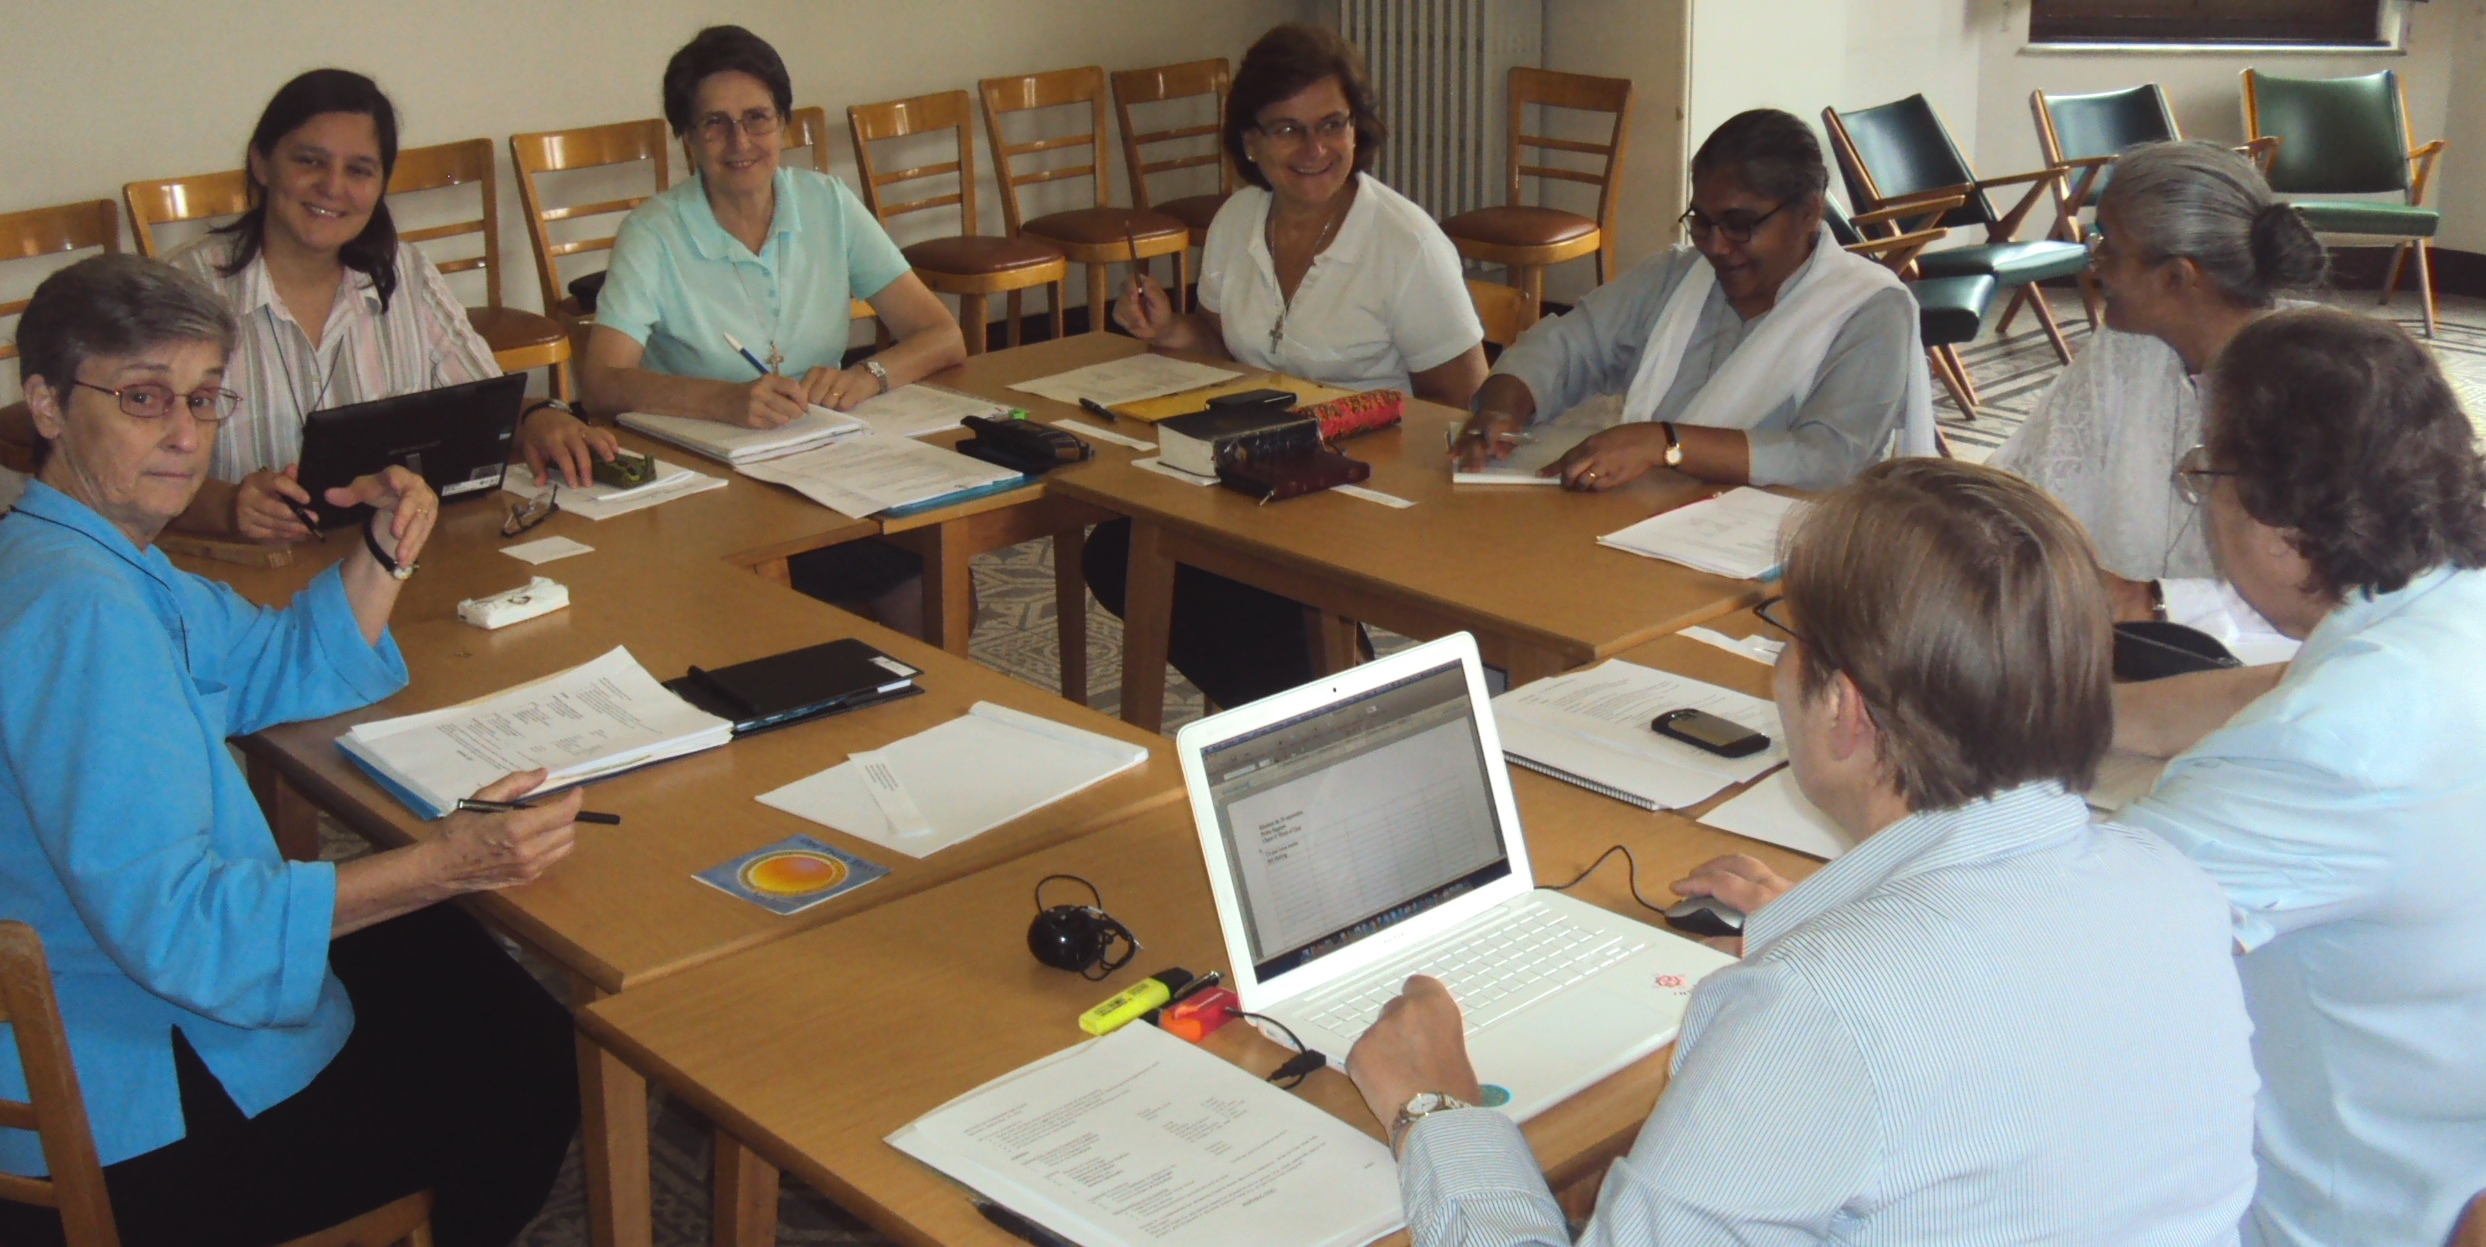 Preparation for the International Formators' Meeting